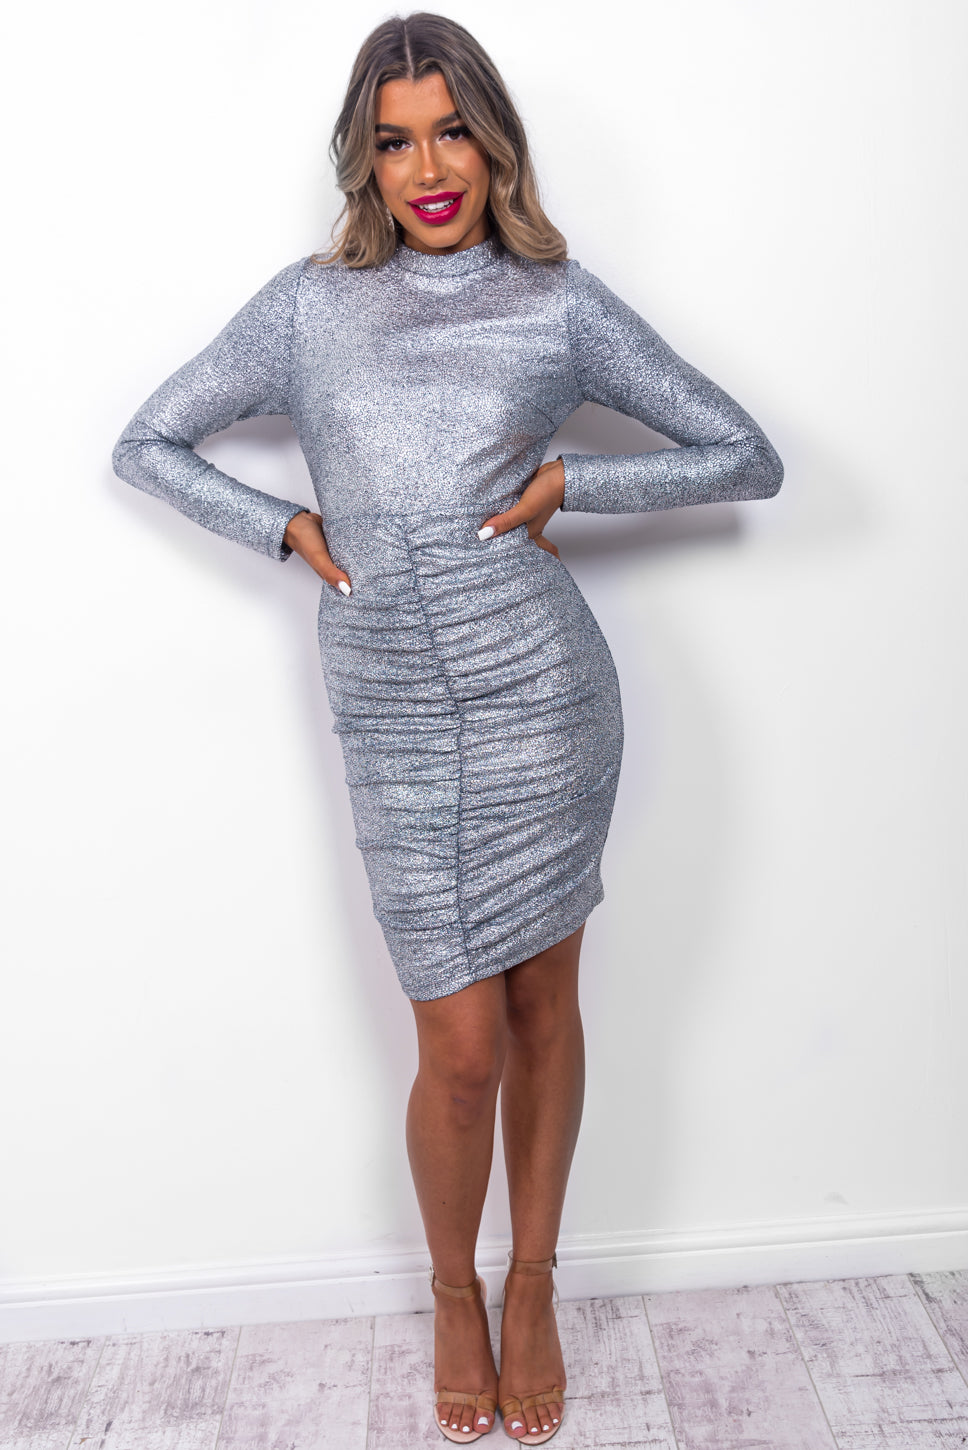 https://cdn.shopify.com/s/files/1/0062/6661/7925/files/product-video-right_on_shine-dress-in-silver.mp4?6017